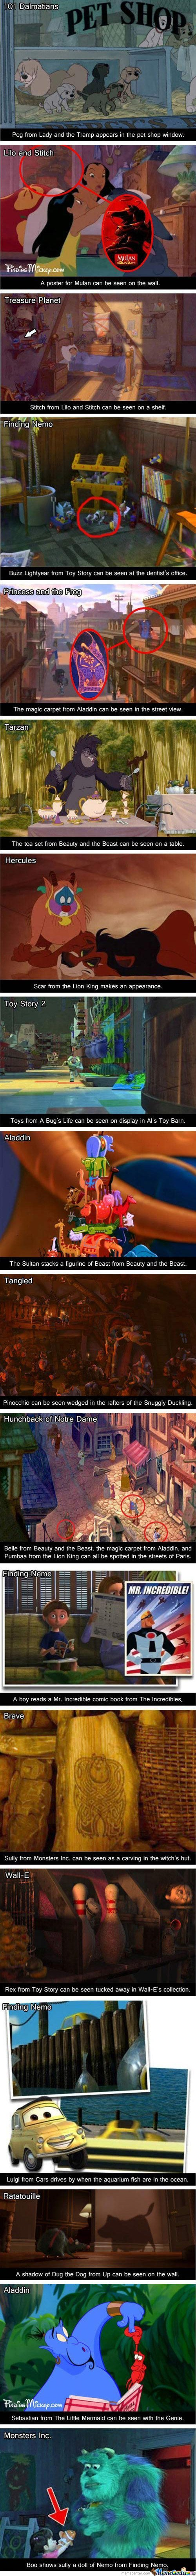 Disneys Secrets